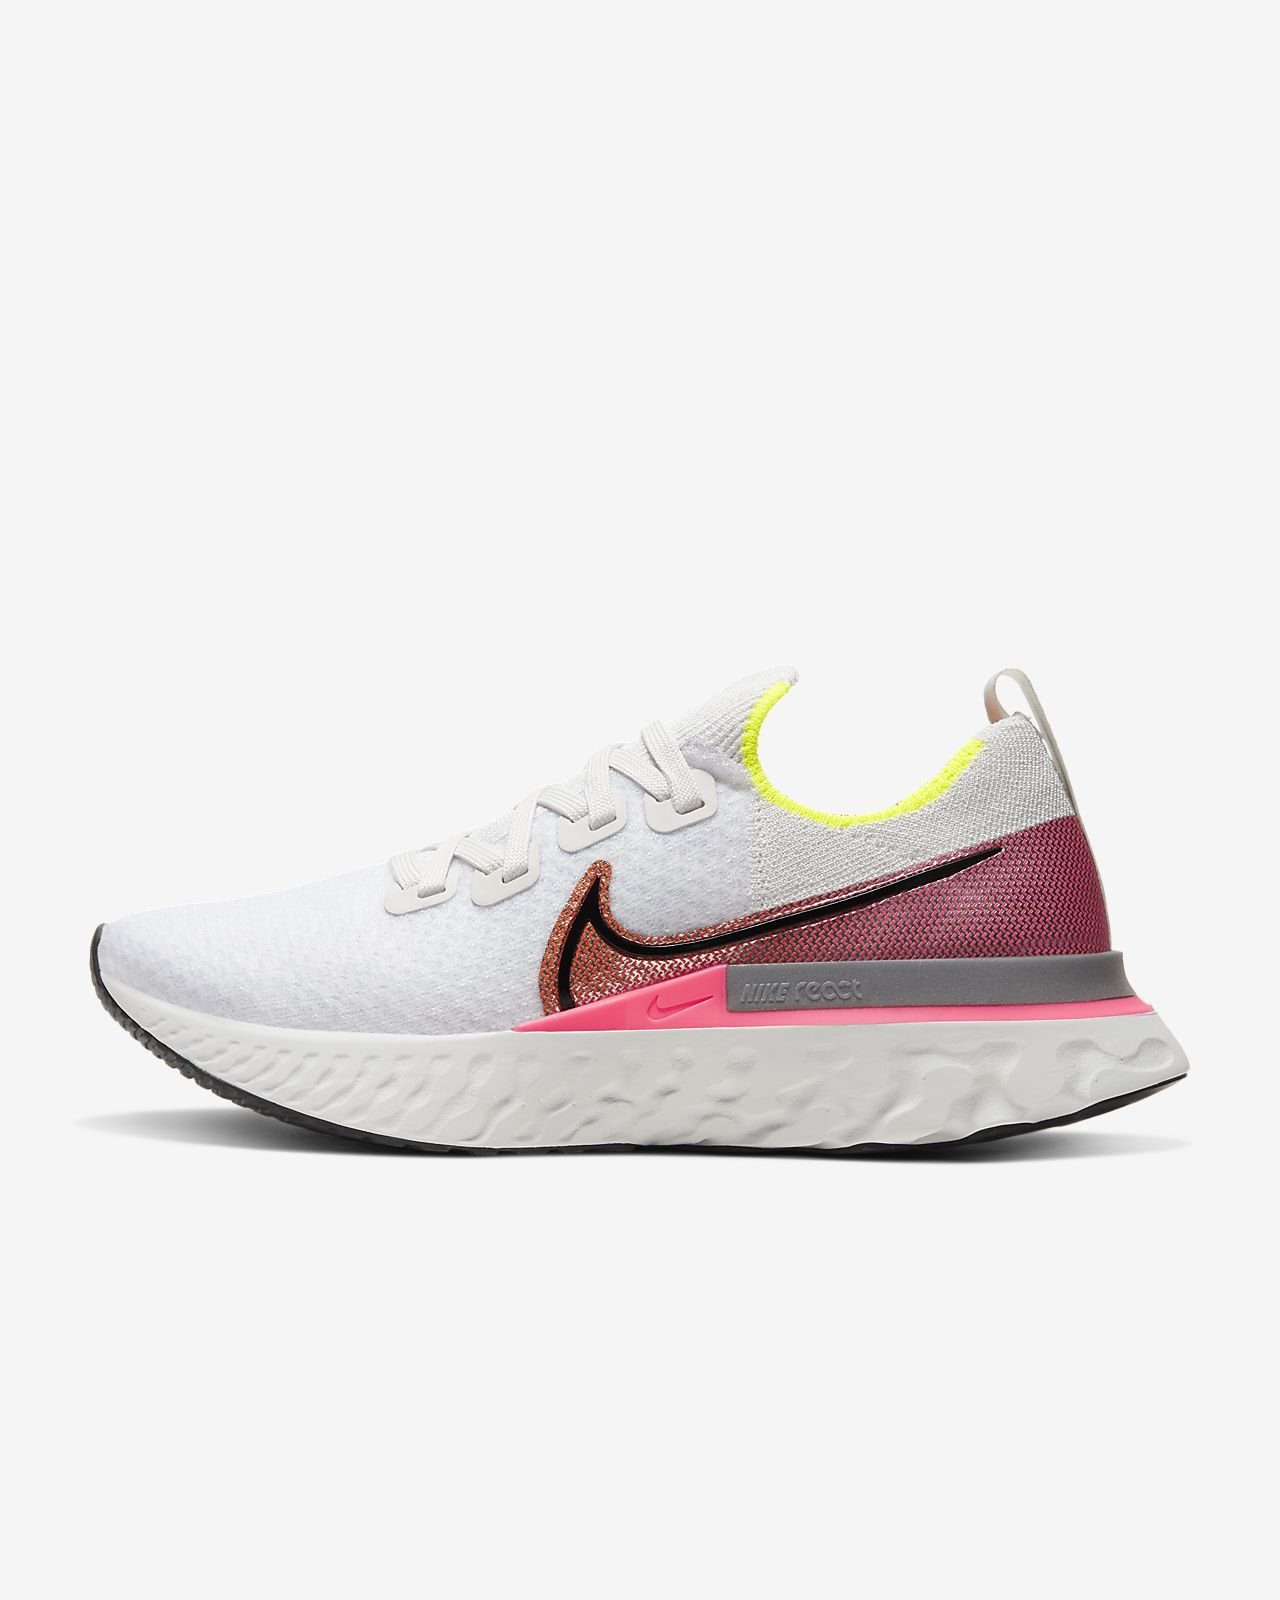 Nike Running Shoes: Questions and Answers for Nike Running